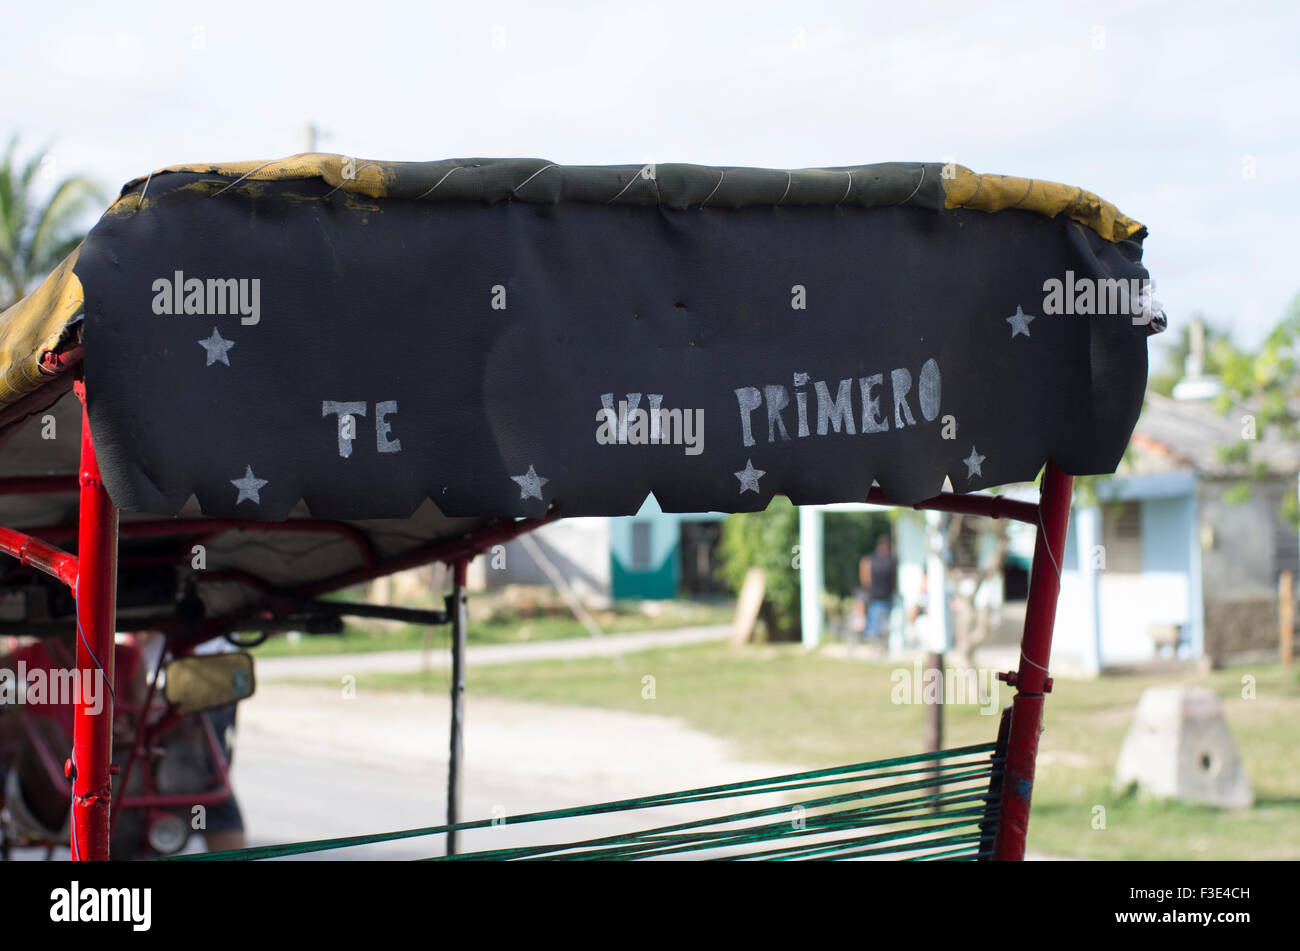 Te vi primero, meaning I saw you first, on a bicycle taxi in Playa Larga in the island Republic of Cuba - Stock Image